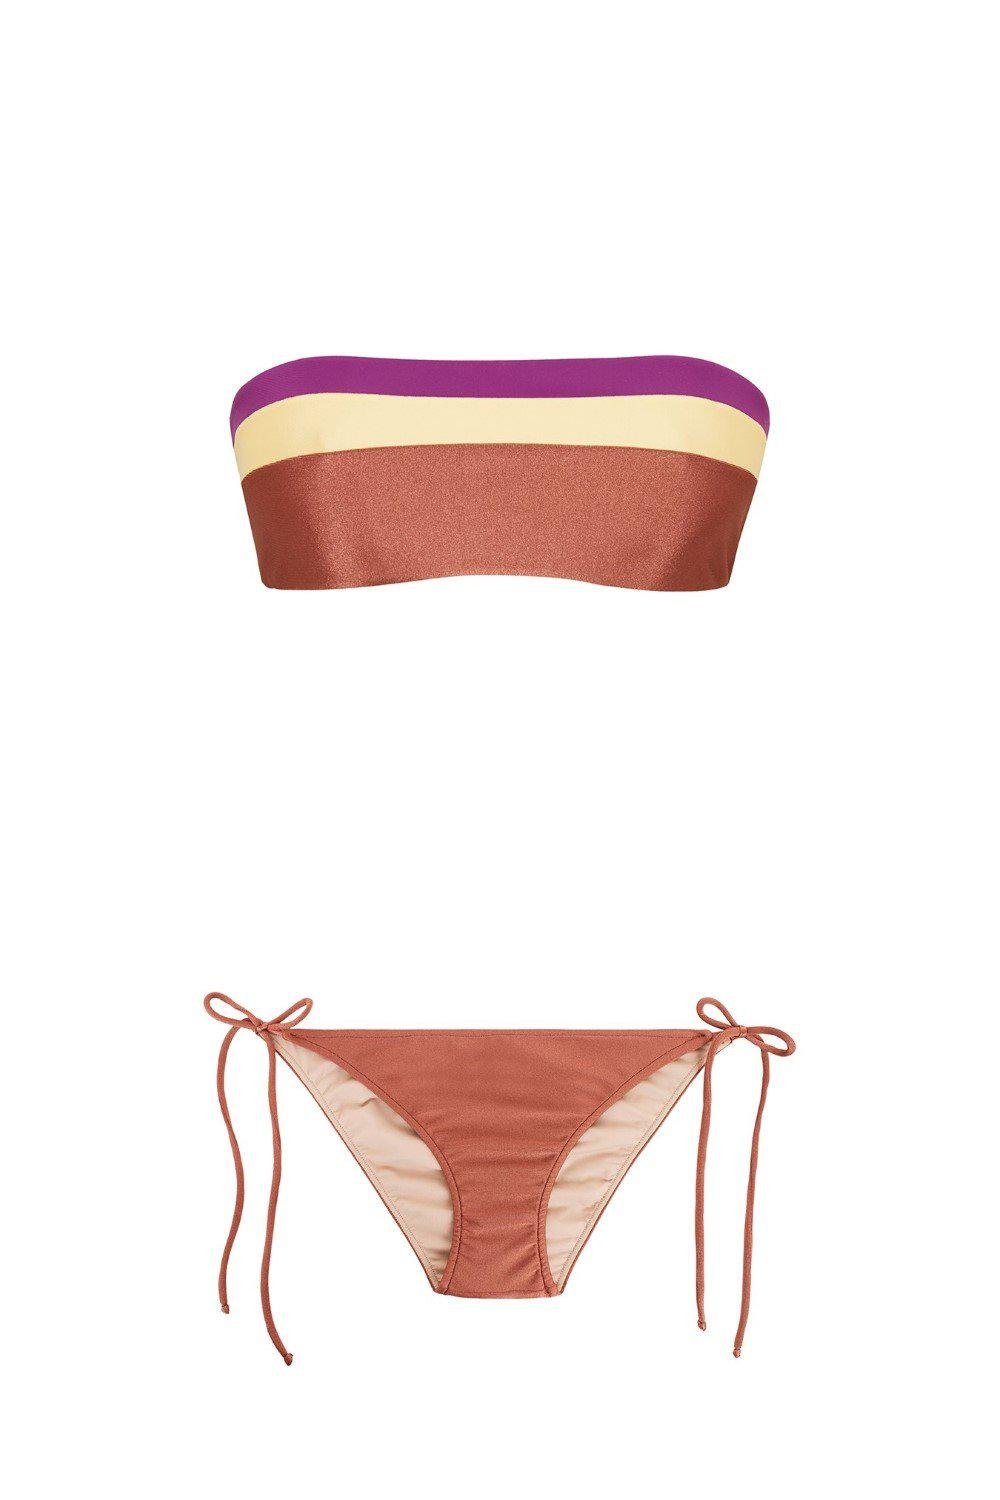 Cinque Terre Strapless Bikini with Side Ties 2